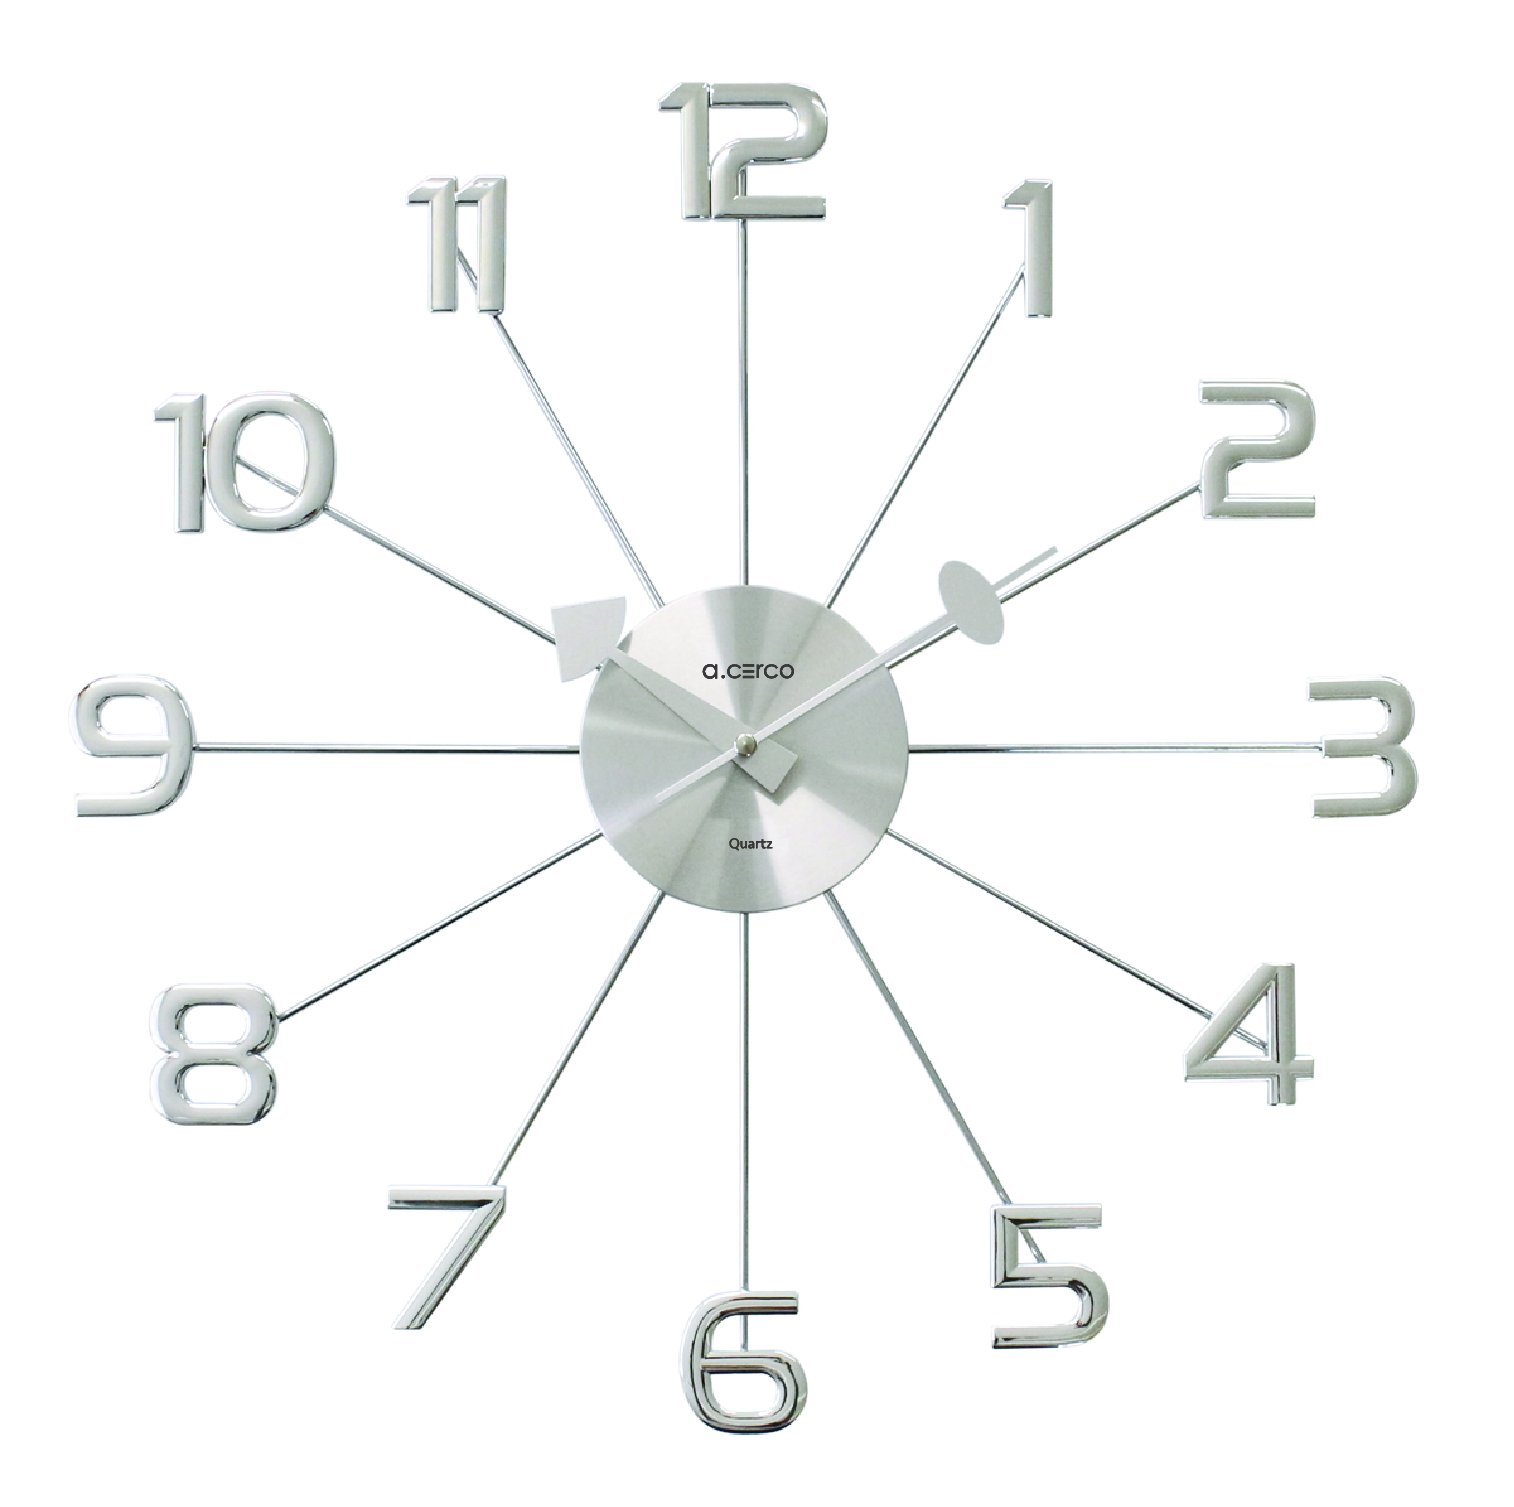 A.Cerco Analog Wall Clock – Silver Decorative Metal Silent Wall Clock – 19.1 Inch